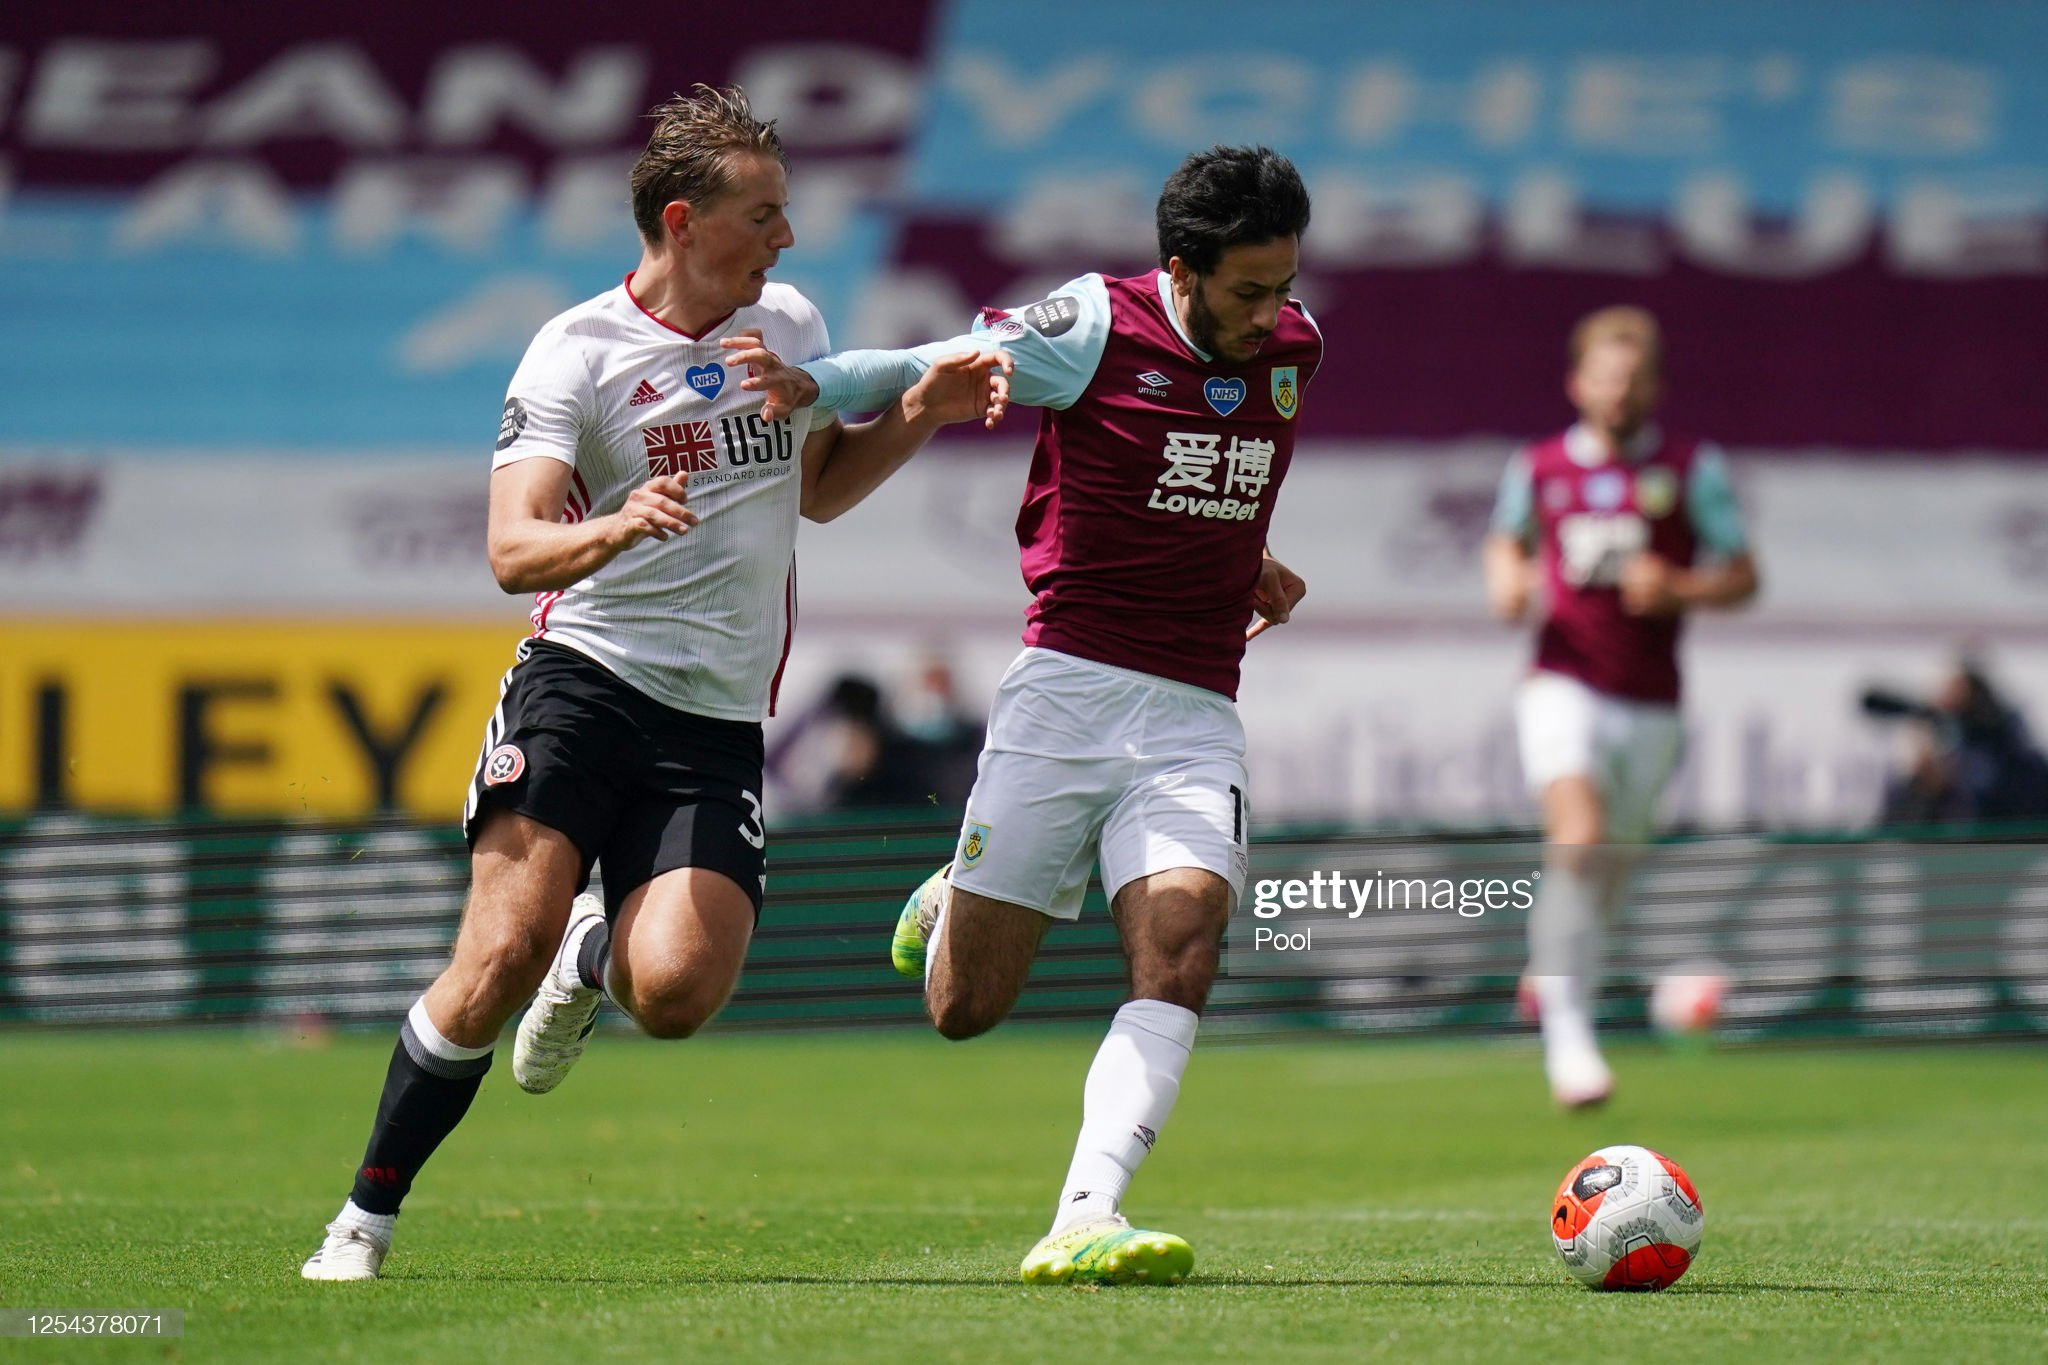 Burnley vs Sheffield United Preview, prediction and odds